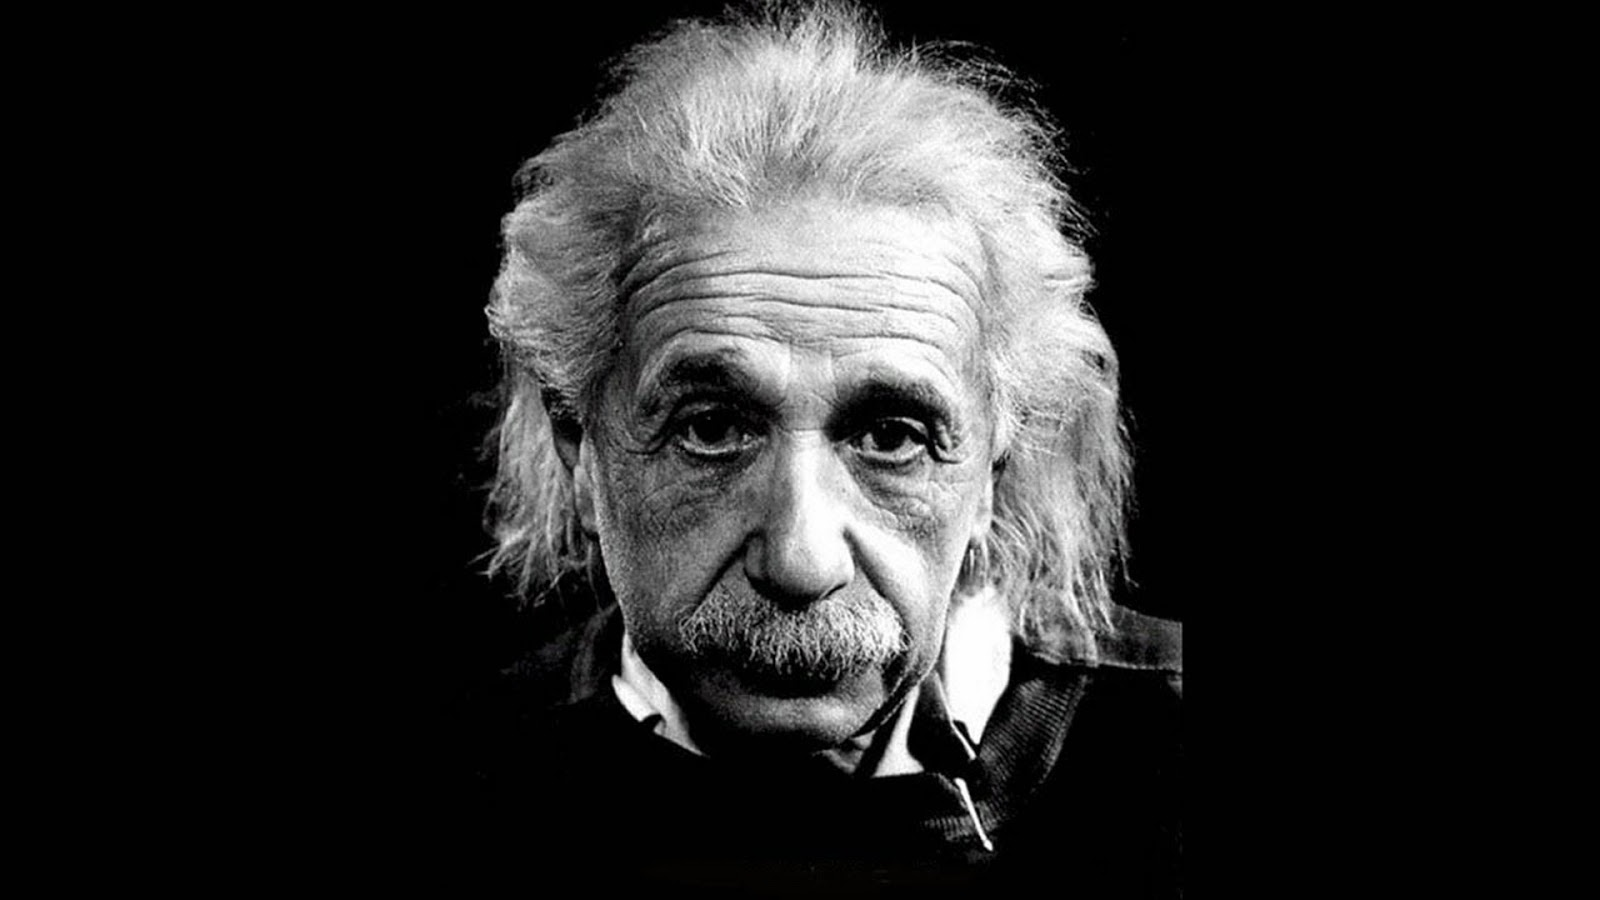 teifidancer: Albert Einstein (14/3/1879 - 18/4/1955) - A ...